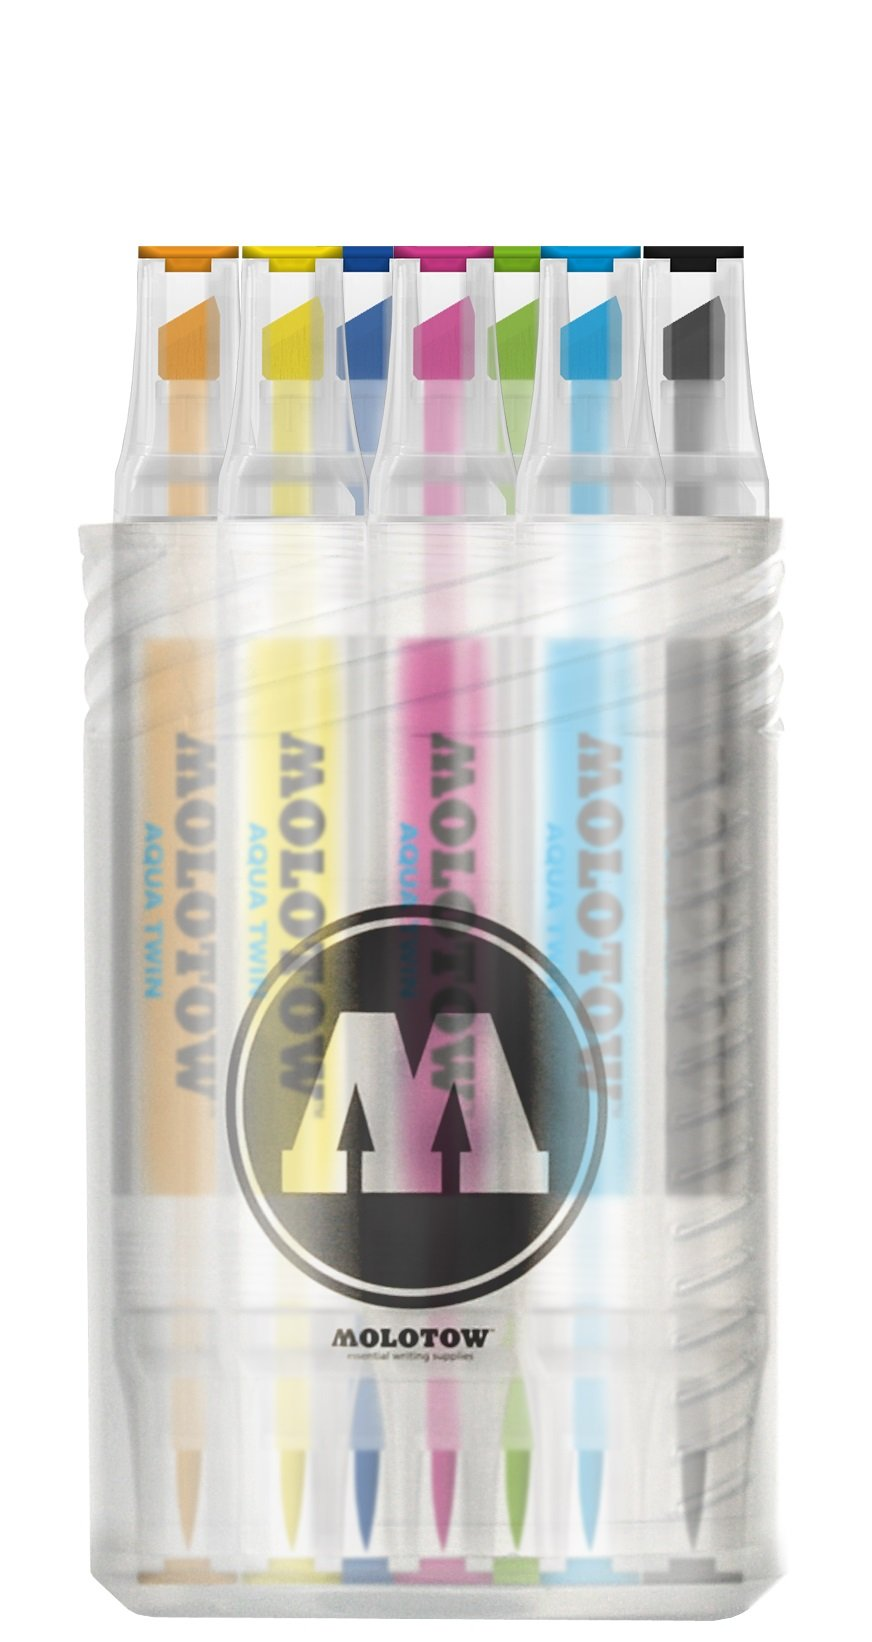 Molotow Aqua Twin Marker Complete Color Set, Brush and Chisel Nib, Assorted Colors, 12 Marker Set, 1 Set Each (729.311)